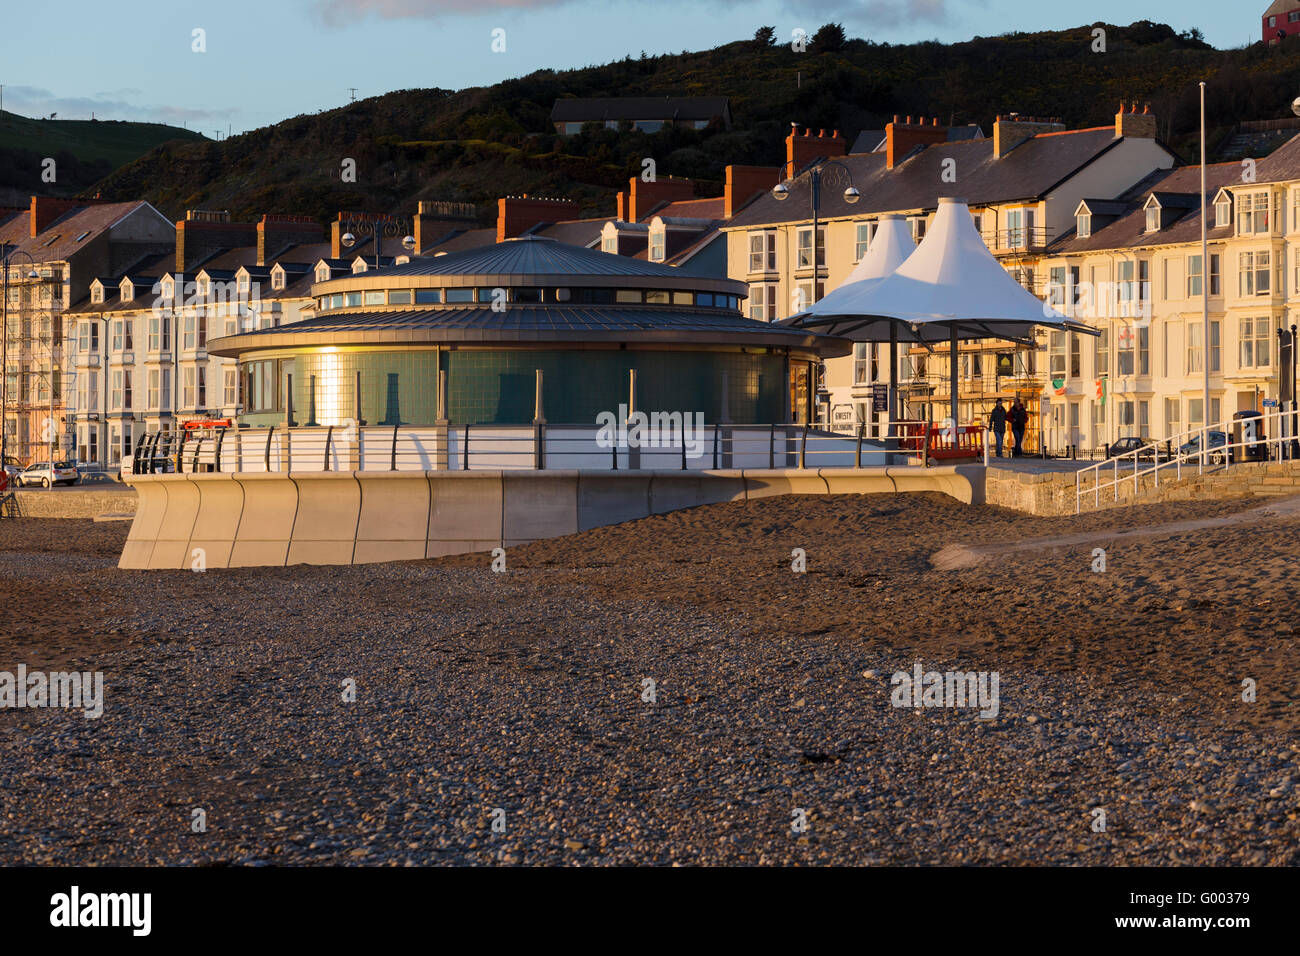 The new Aberystwyth Bandstand lit up by the evening sun, taken from the beach to the south. - Stock Image